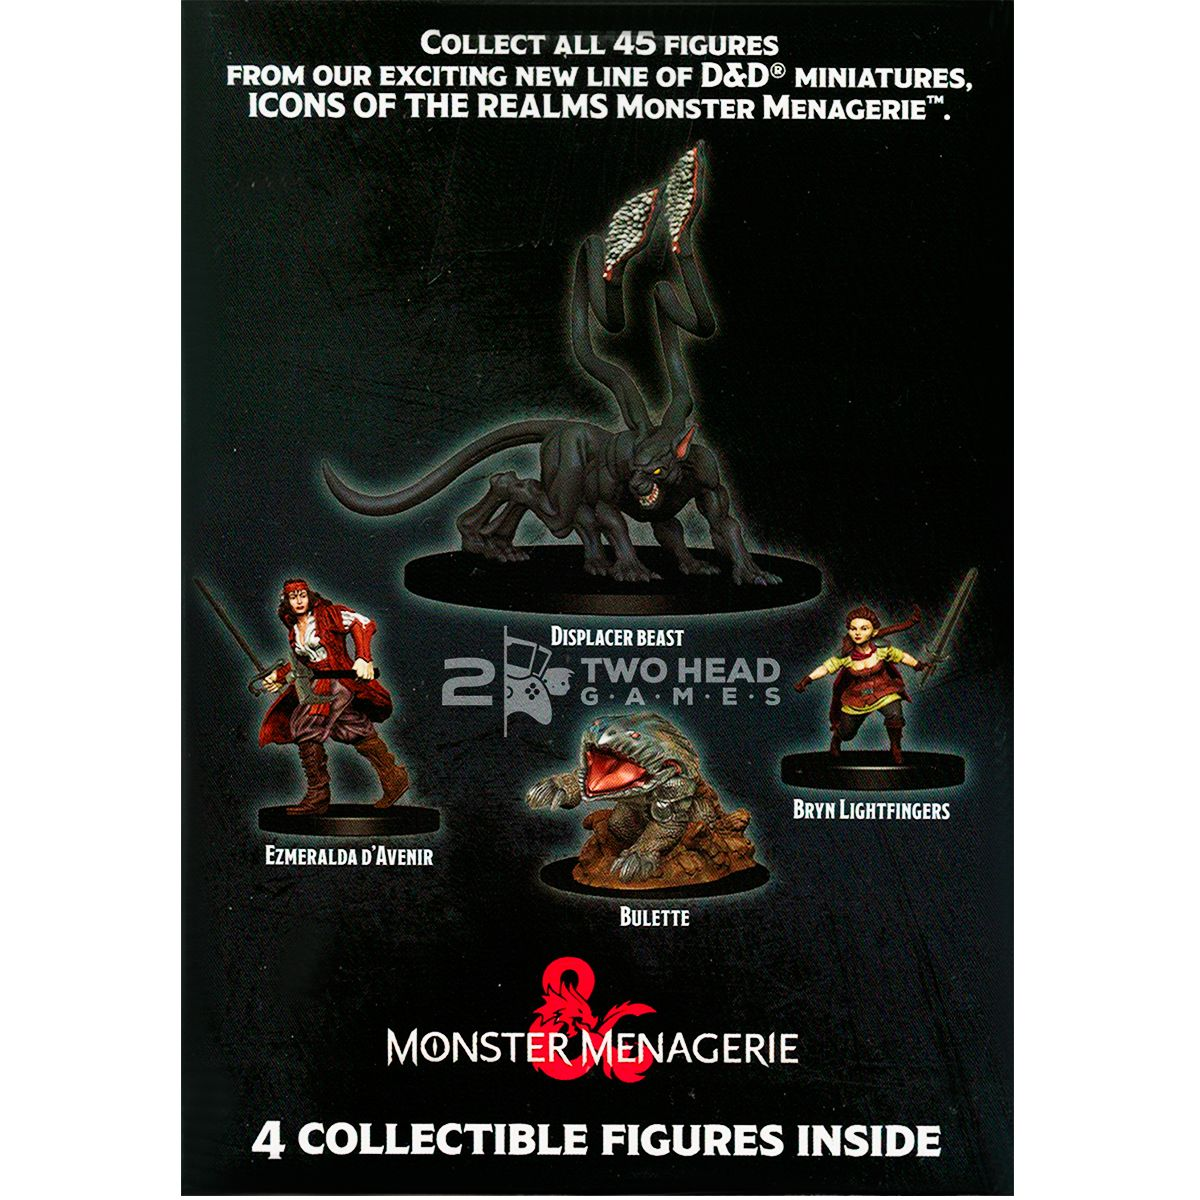 D&D Miniatura Icons of the Realms Monster Menagerie Booster Brick